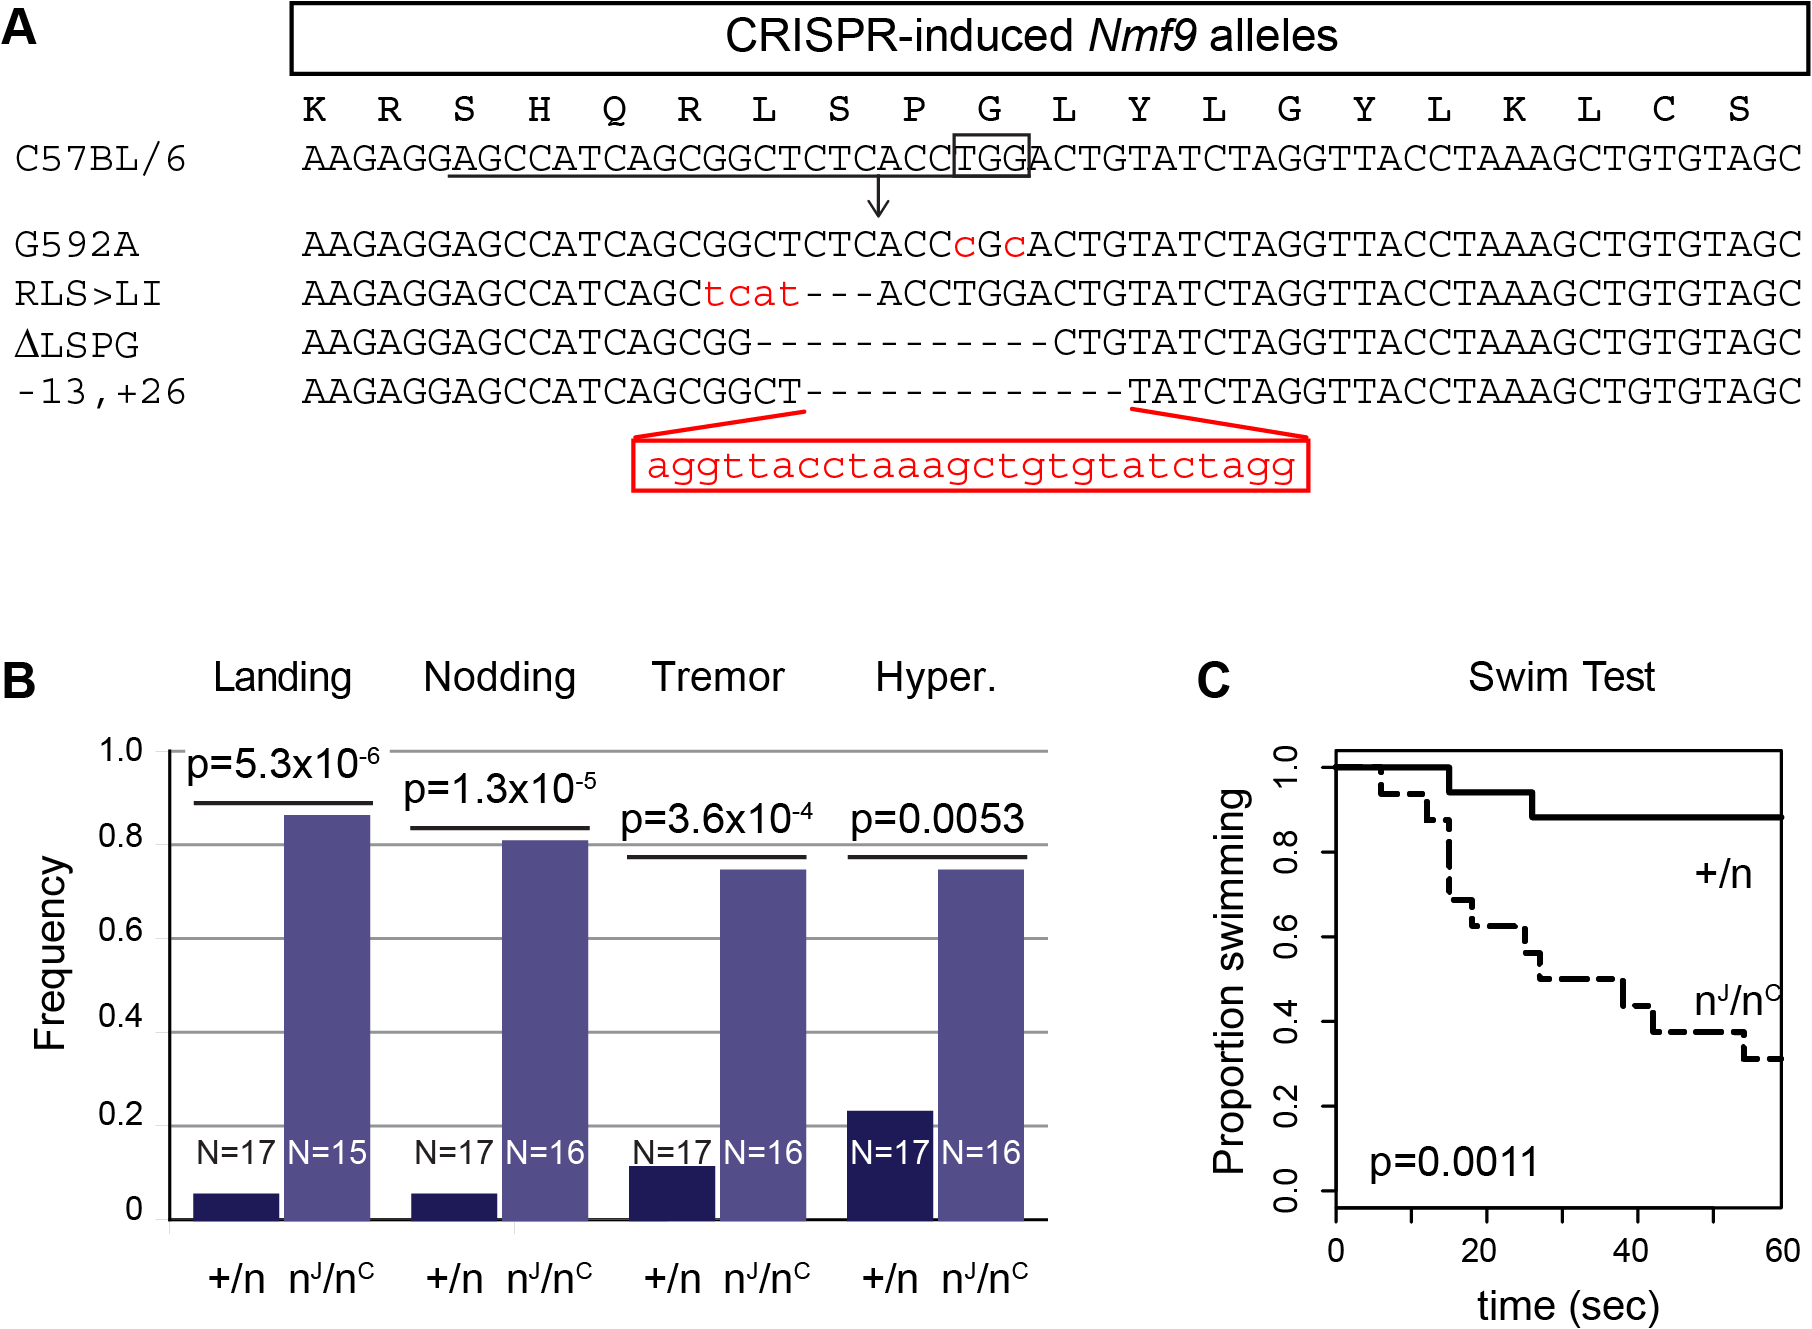 Genome edited alleles show importance of conserved domain 2 and confirm identity of <i>nmf9</i>.